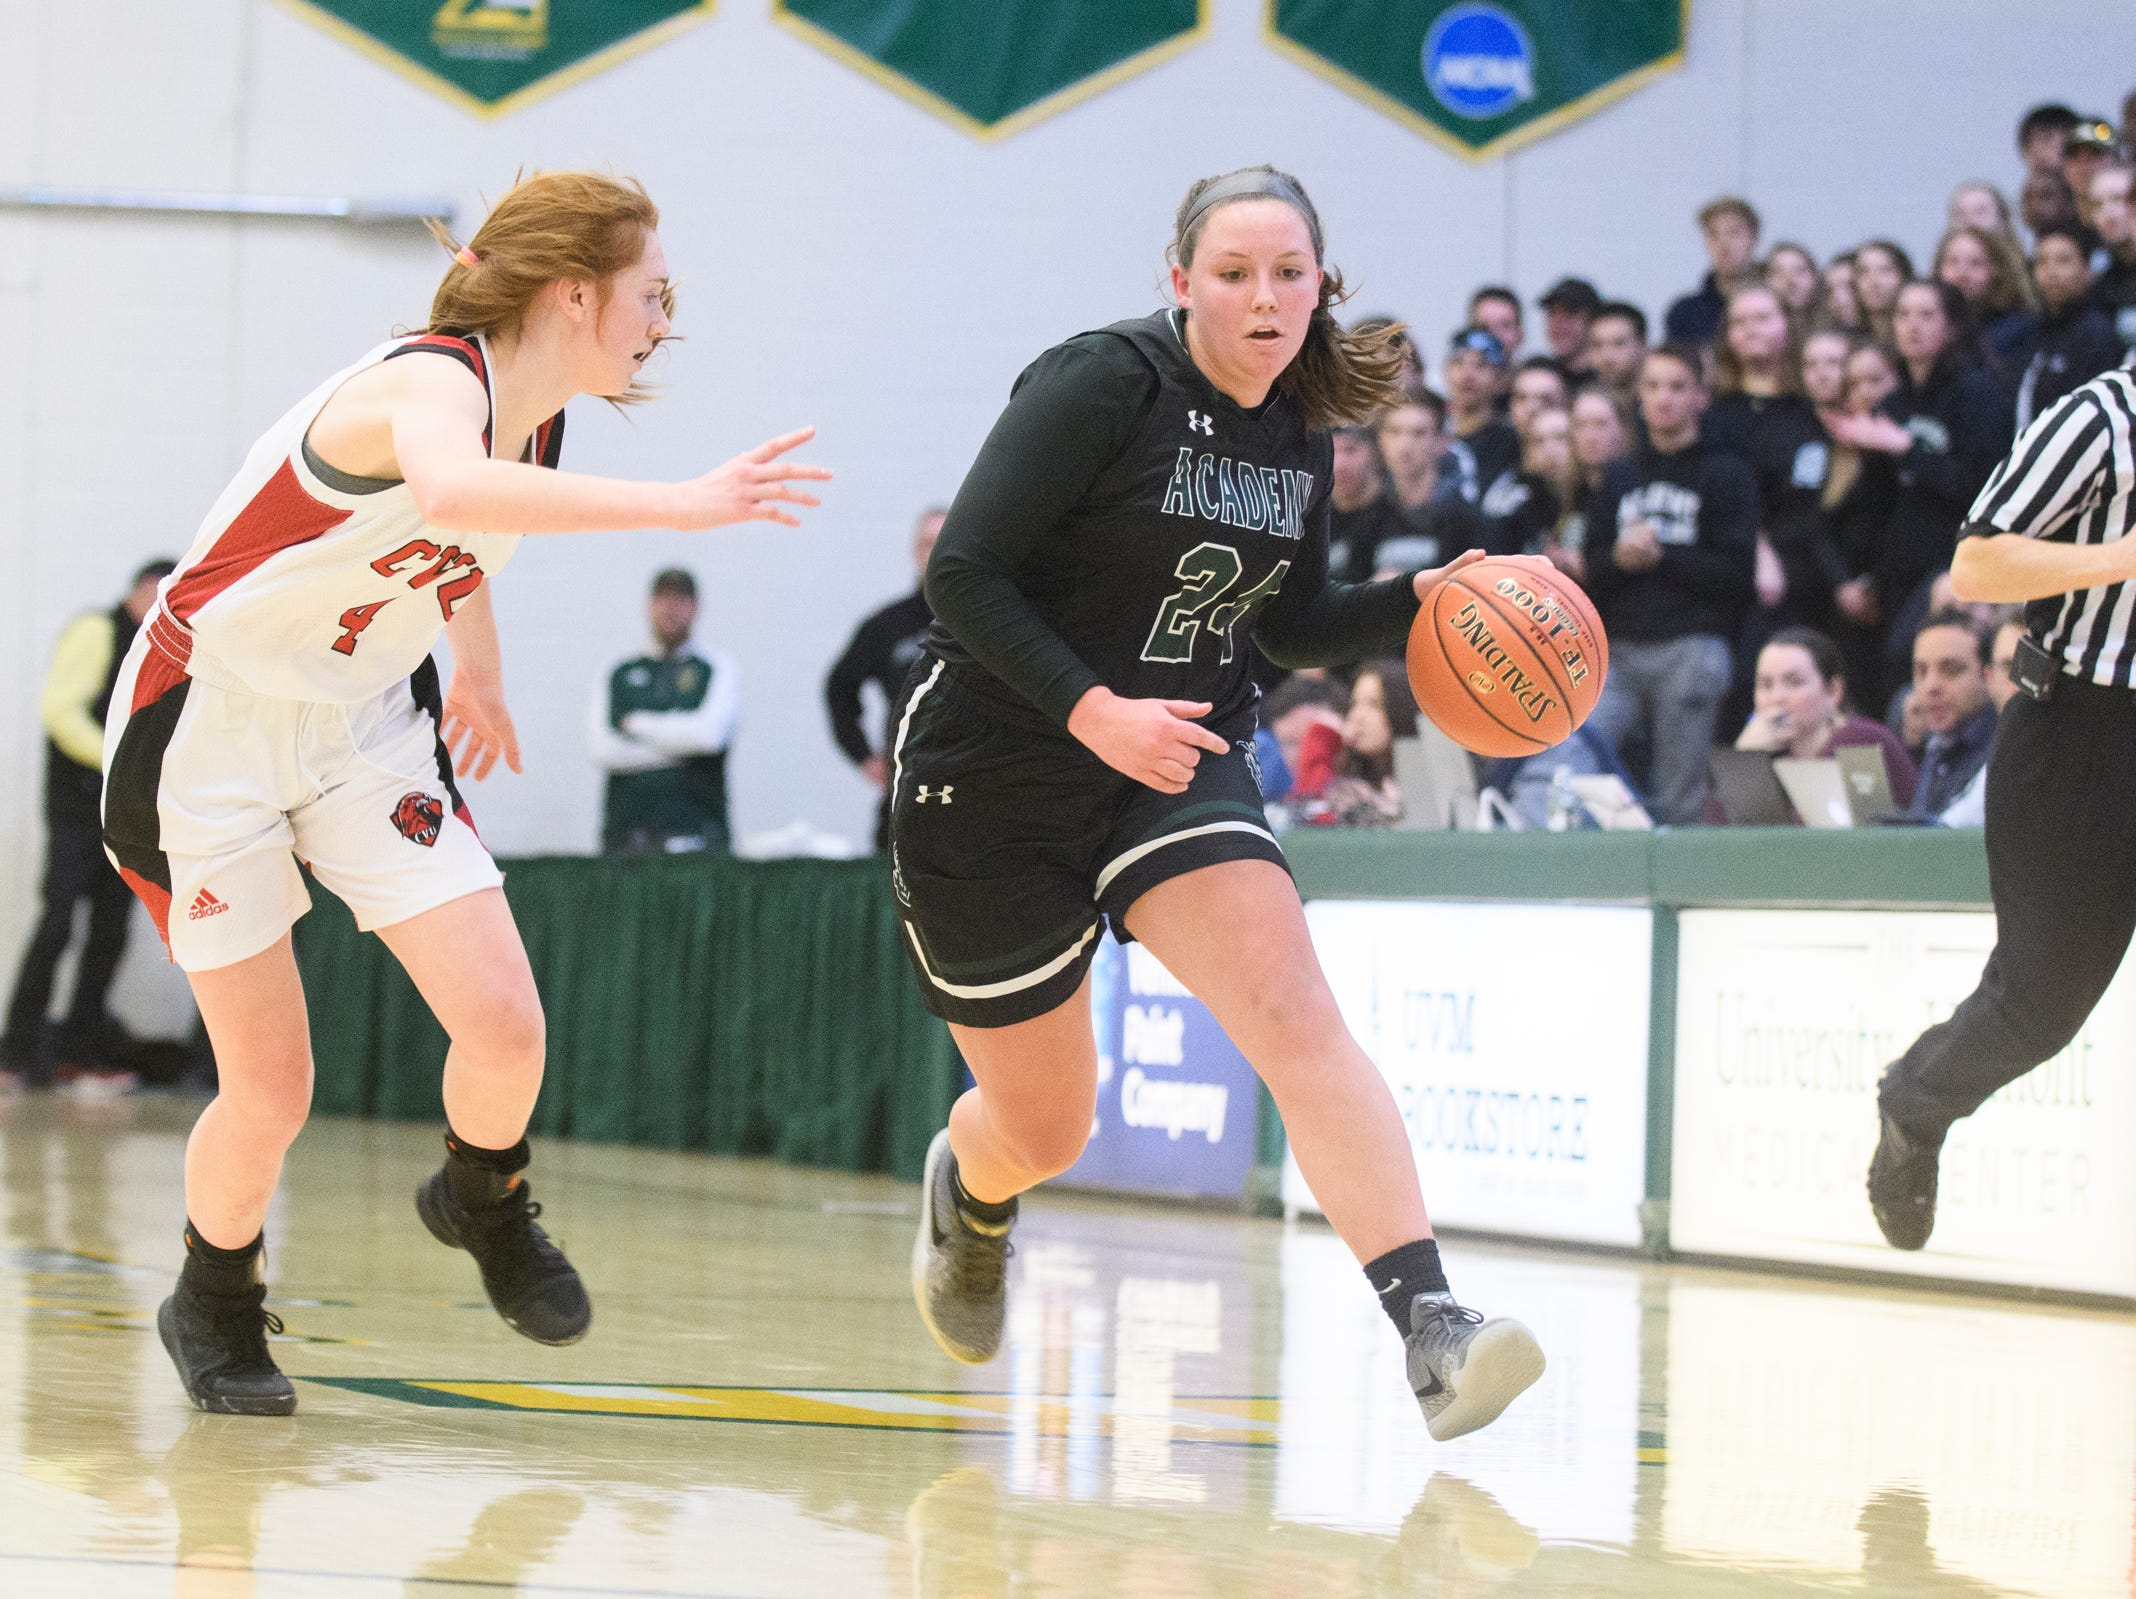 St. Johnsbury's Josie Choiniere (24) dribbles the ball down the court past CVU's Catherine Gilwee (4) during the division I girls basketball championship basketball game between the St. Johnsbury Hilltoppers and the Champlain Valley Union Redhawks at Patrick Gym on Sunday afternoon March 10, 2019 in Burlington, Vermont.